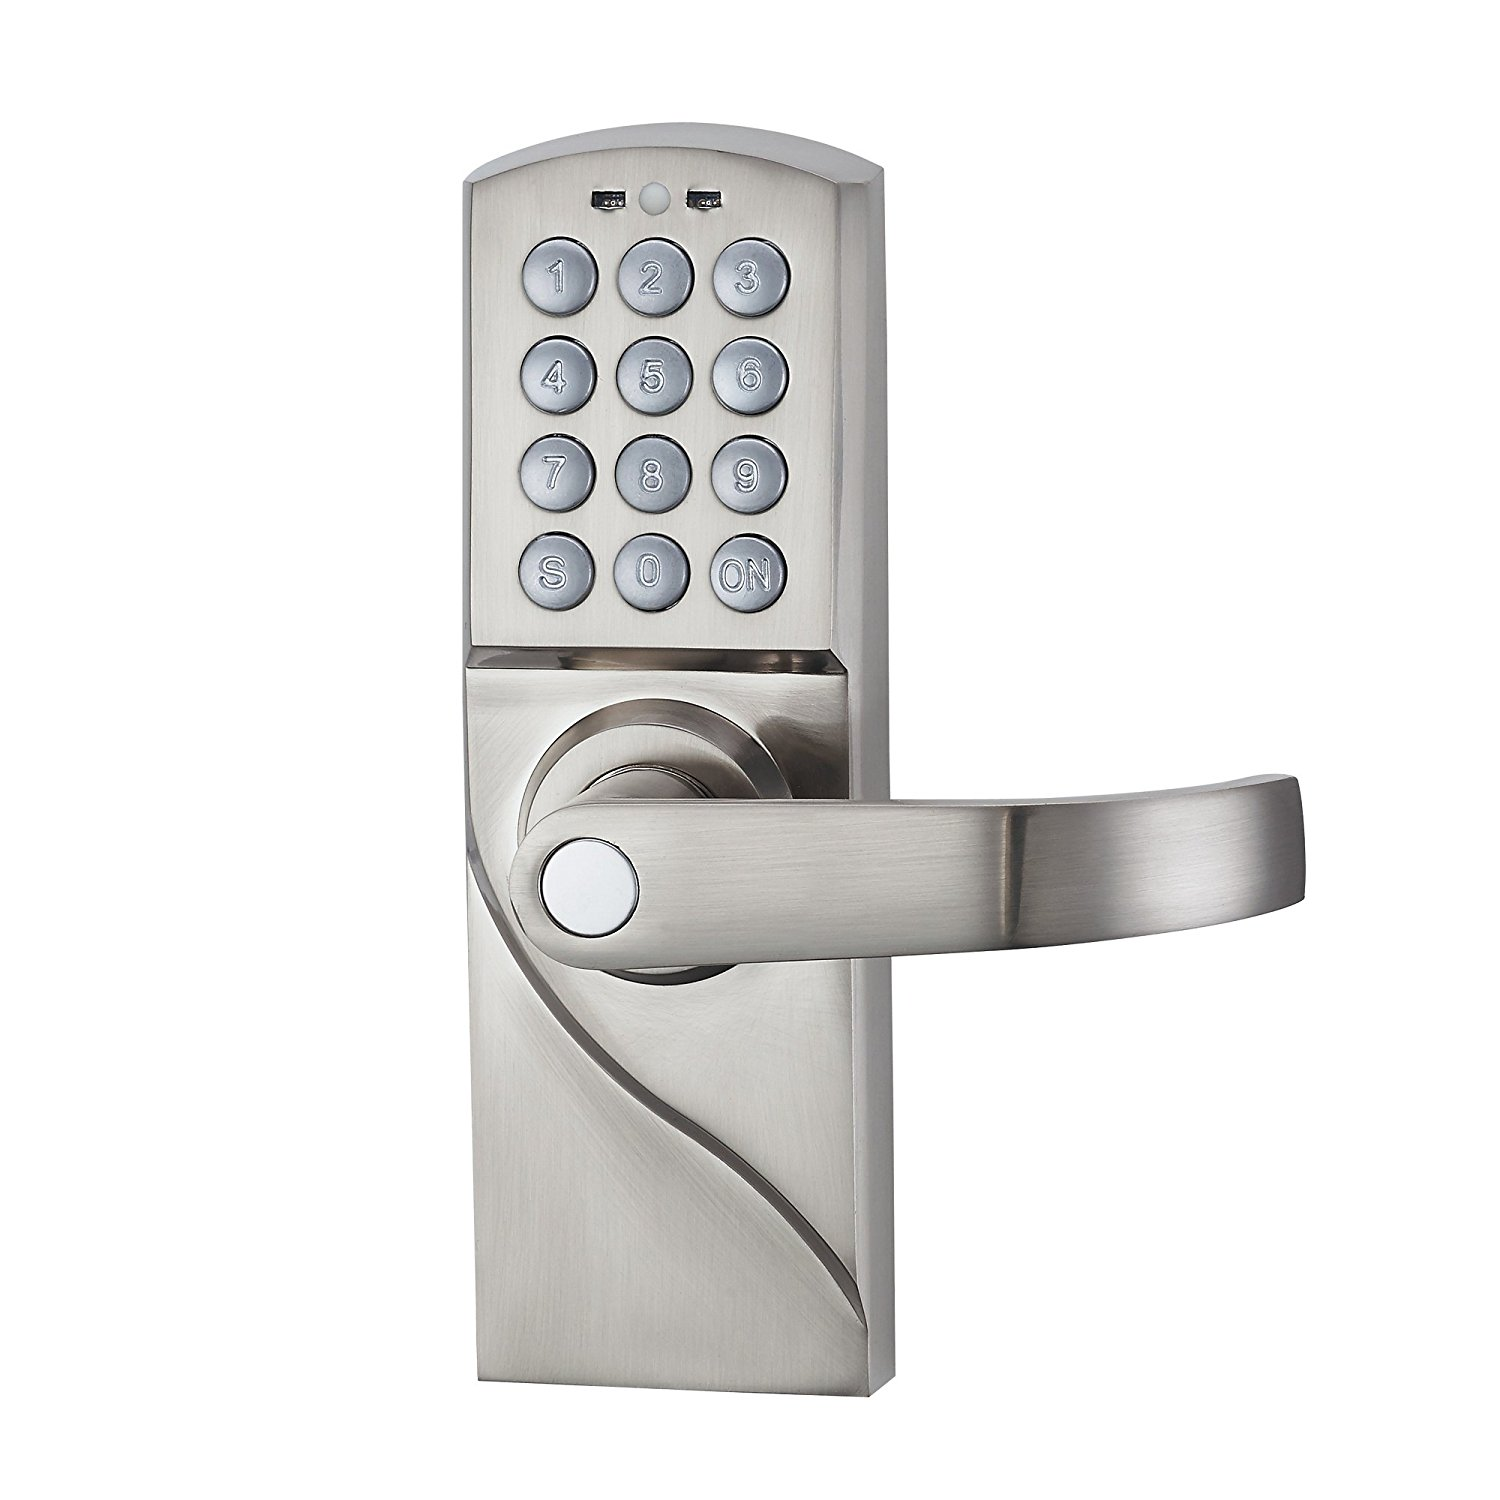 Digital Keypad Door Lock with Backup Keys Electronic Keyless Entry by Password Code Combination